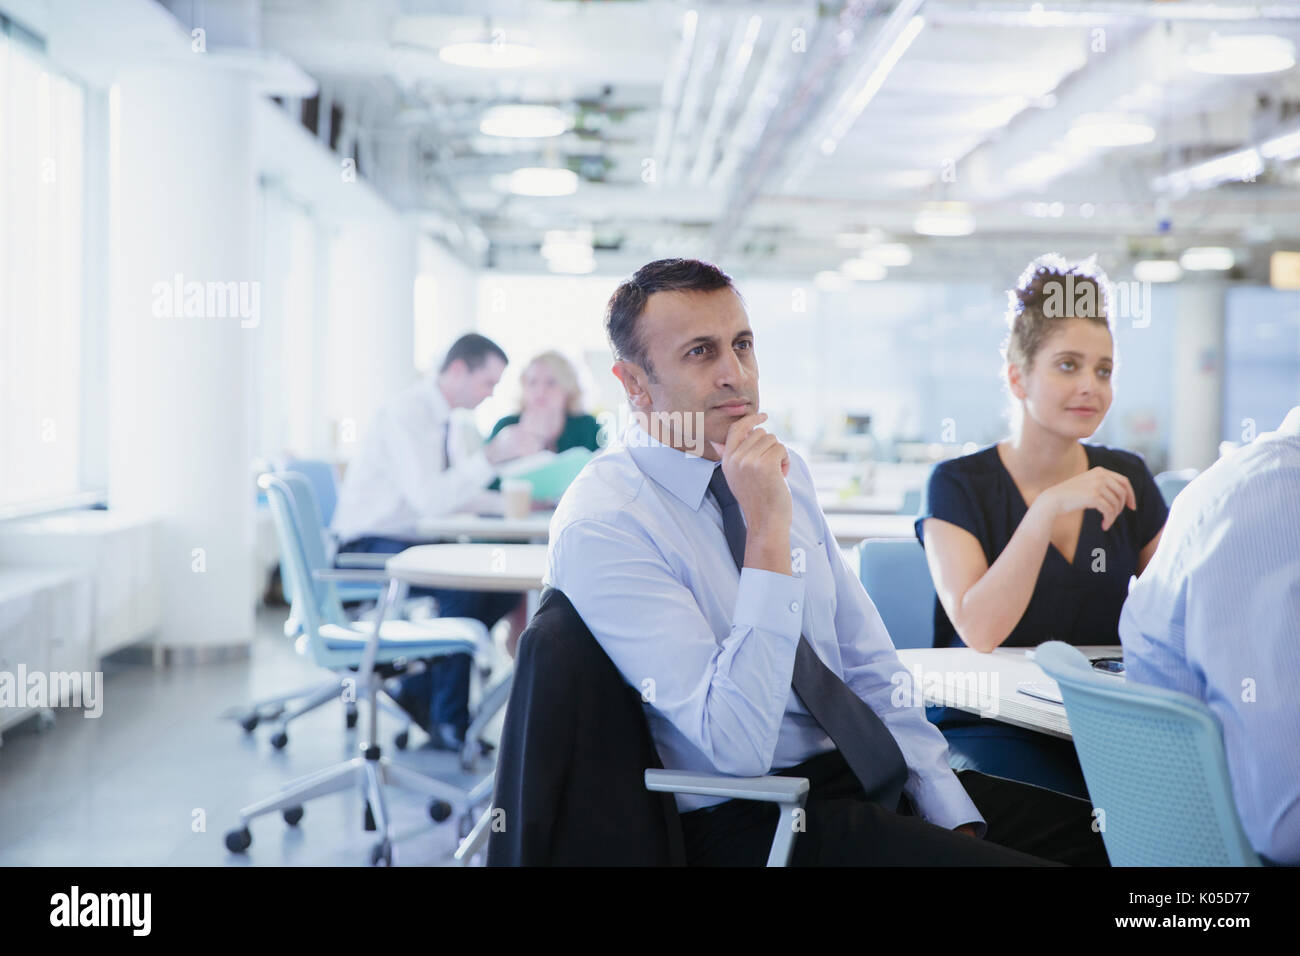 serious attentive businessman listening in conference room meeting rh alamy com